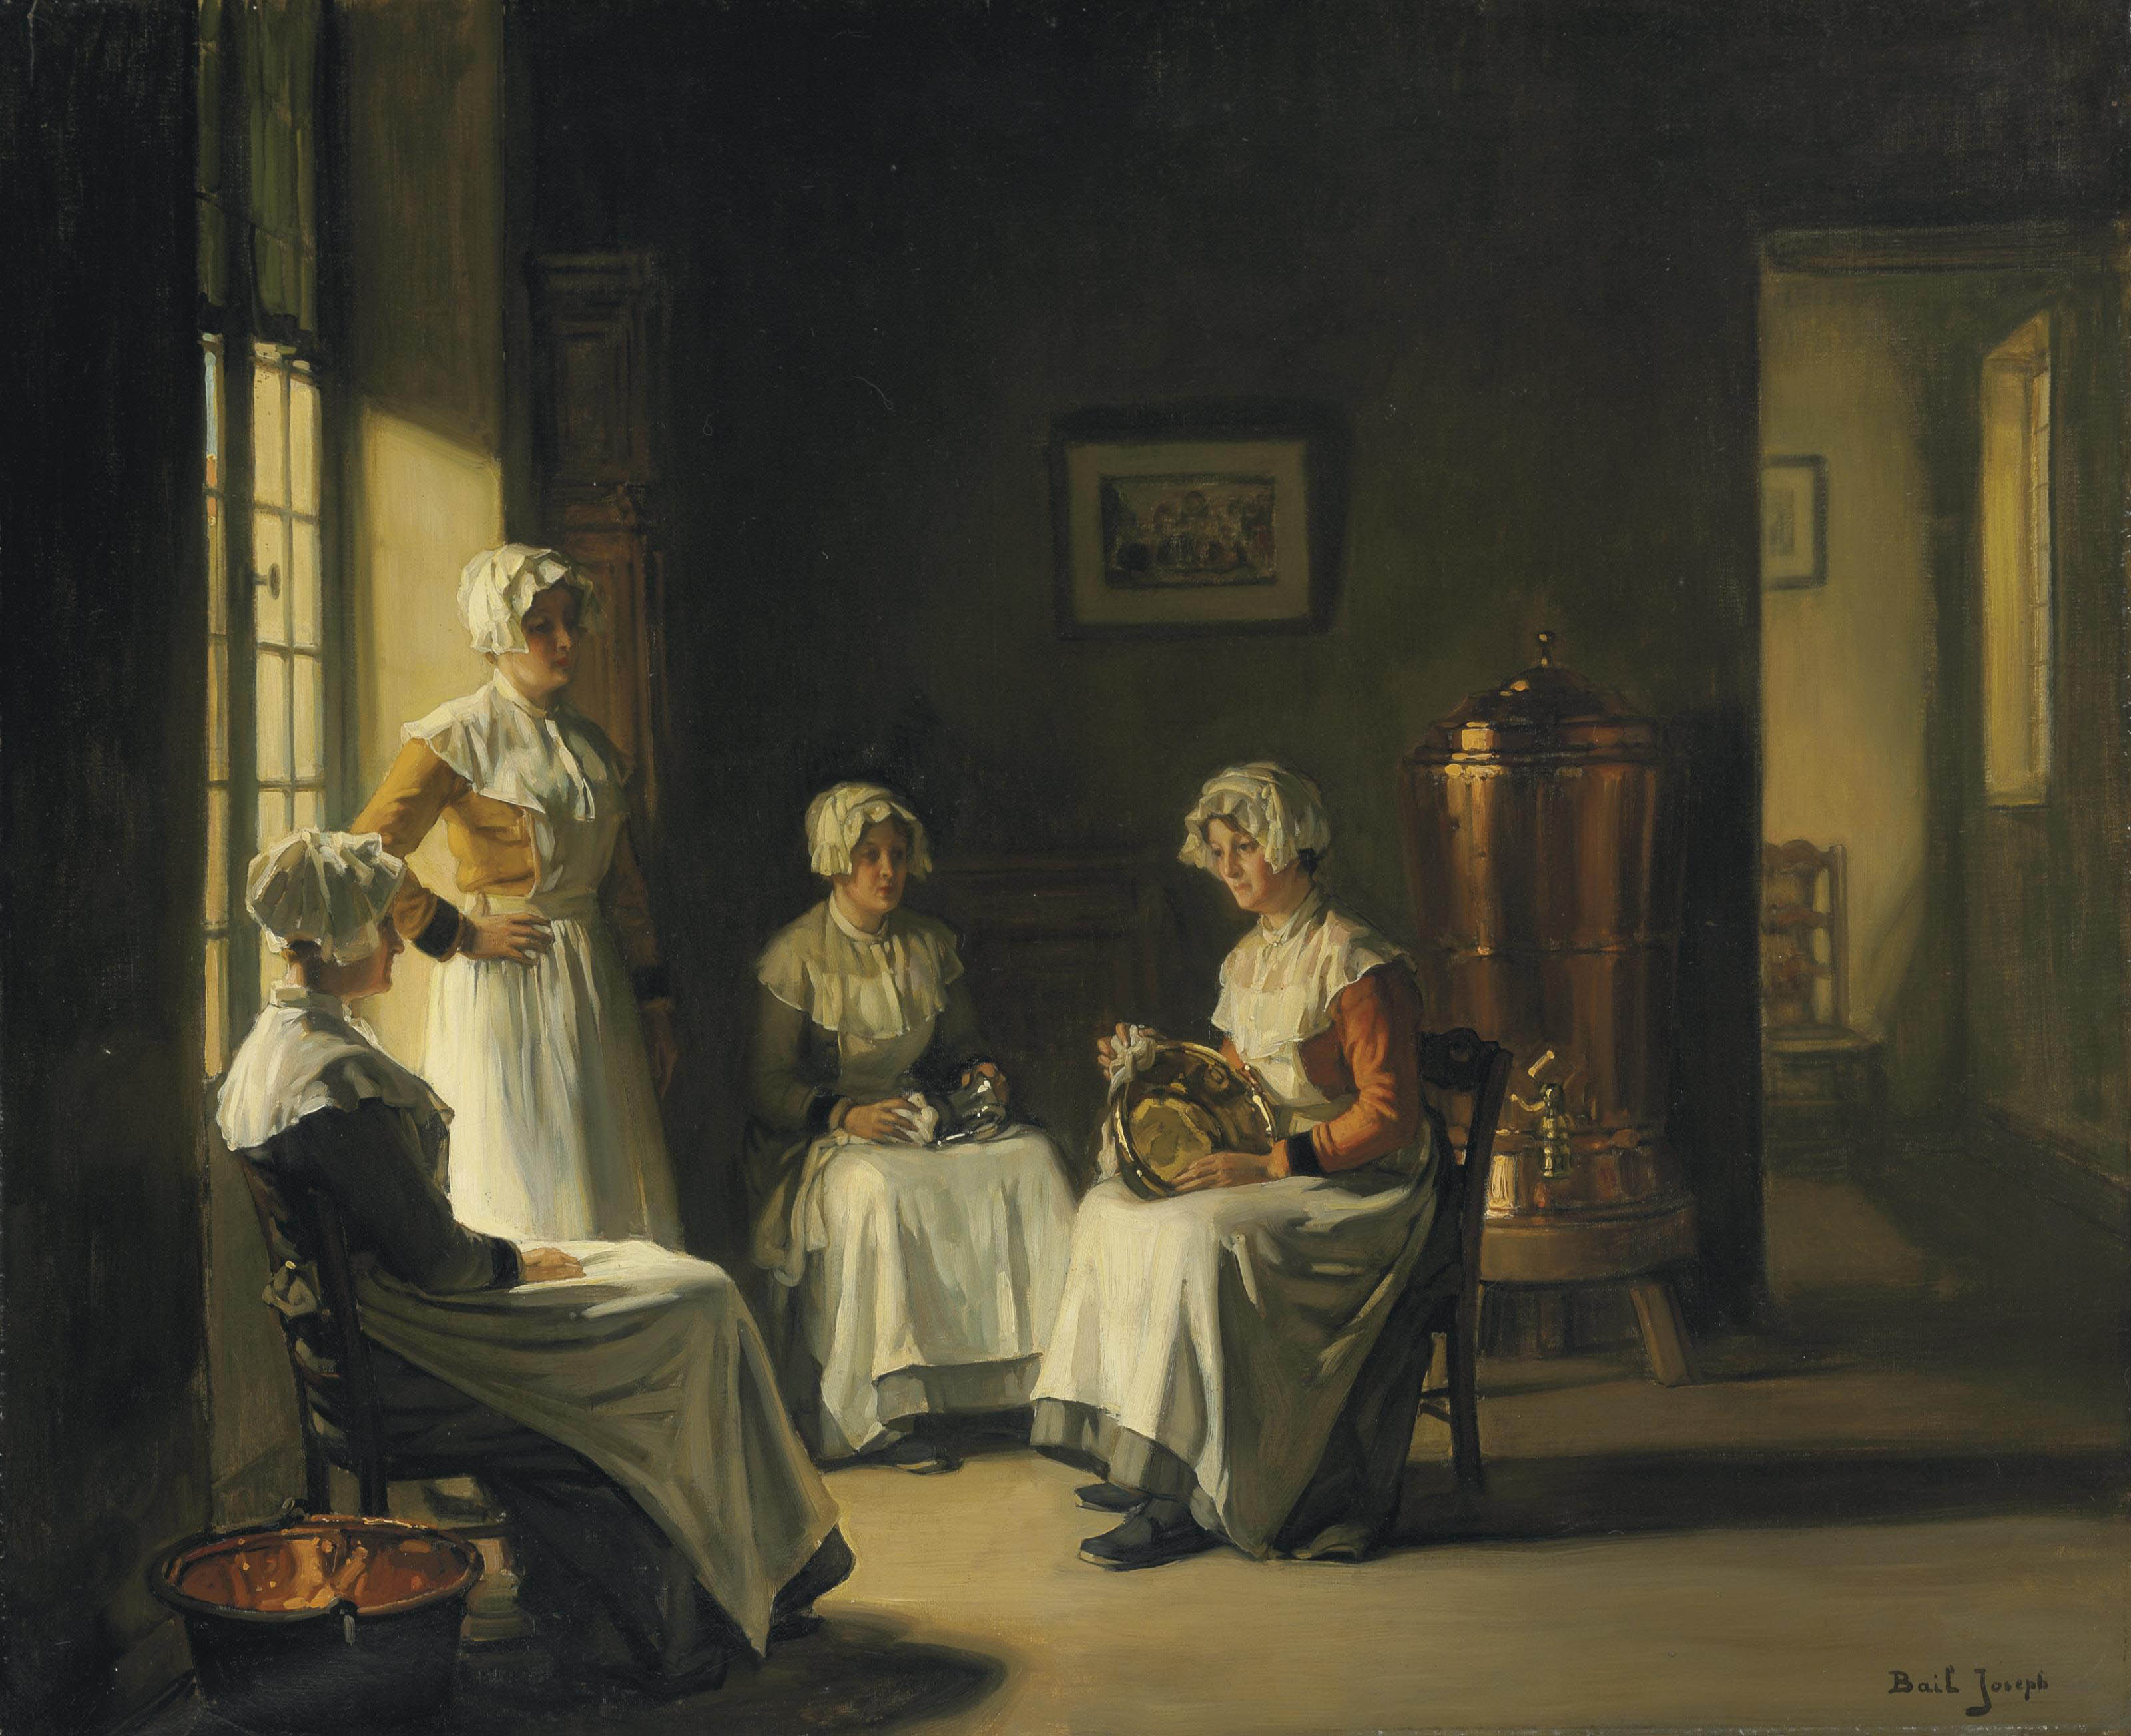 An Interior with Women Polishing Brass